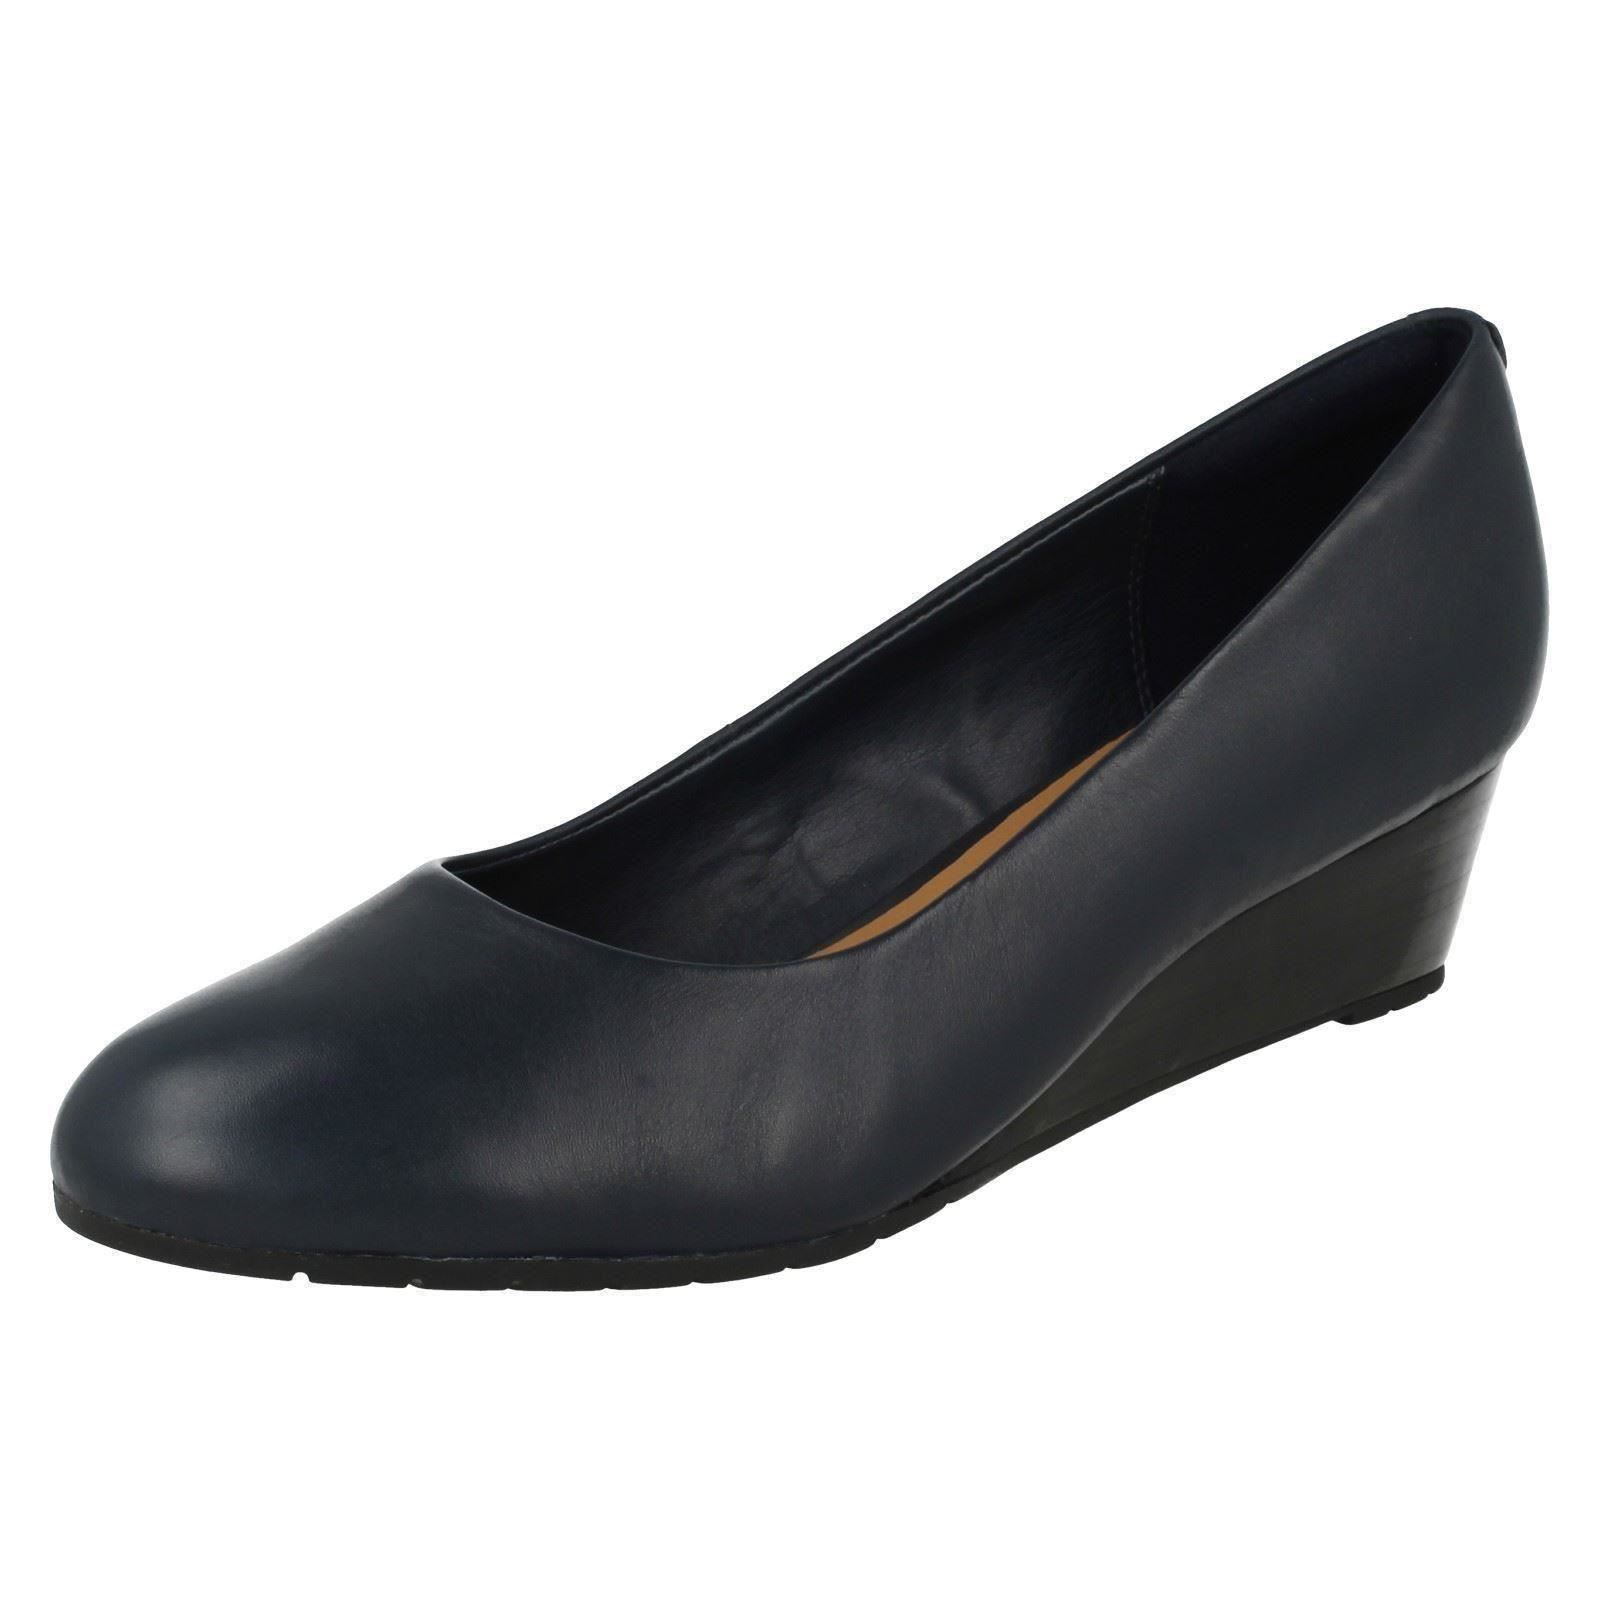 ac69fce3ec5 Ladies Clarks Slip on Wedge Shoes Vendra Bloom Navy Leather 5 UK D. About  this product. Picture 1 of 7  Picture 2 of 7 ...